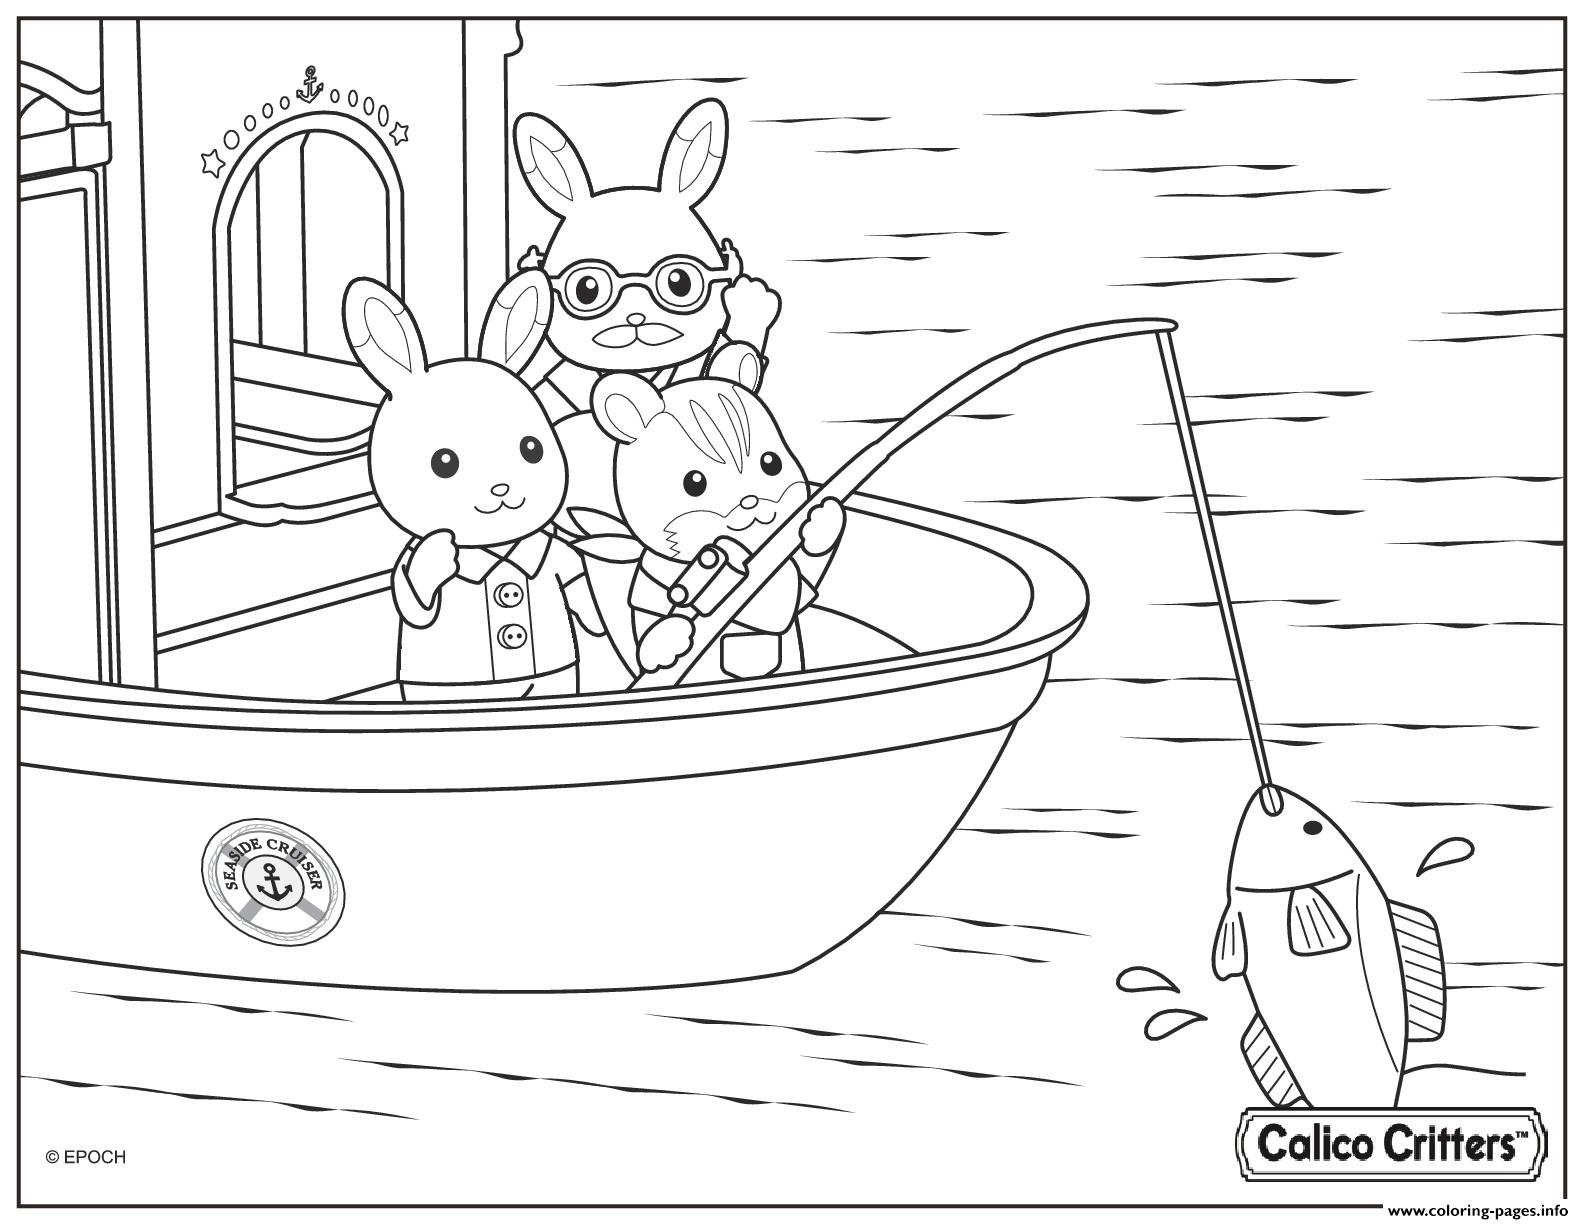 calico critters fishing coloring pages - Fishing Coloring Pages